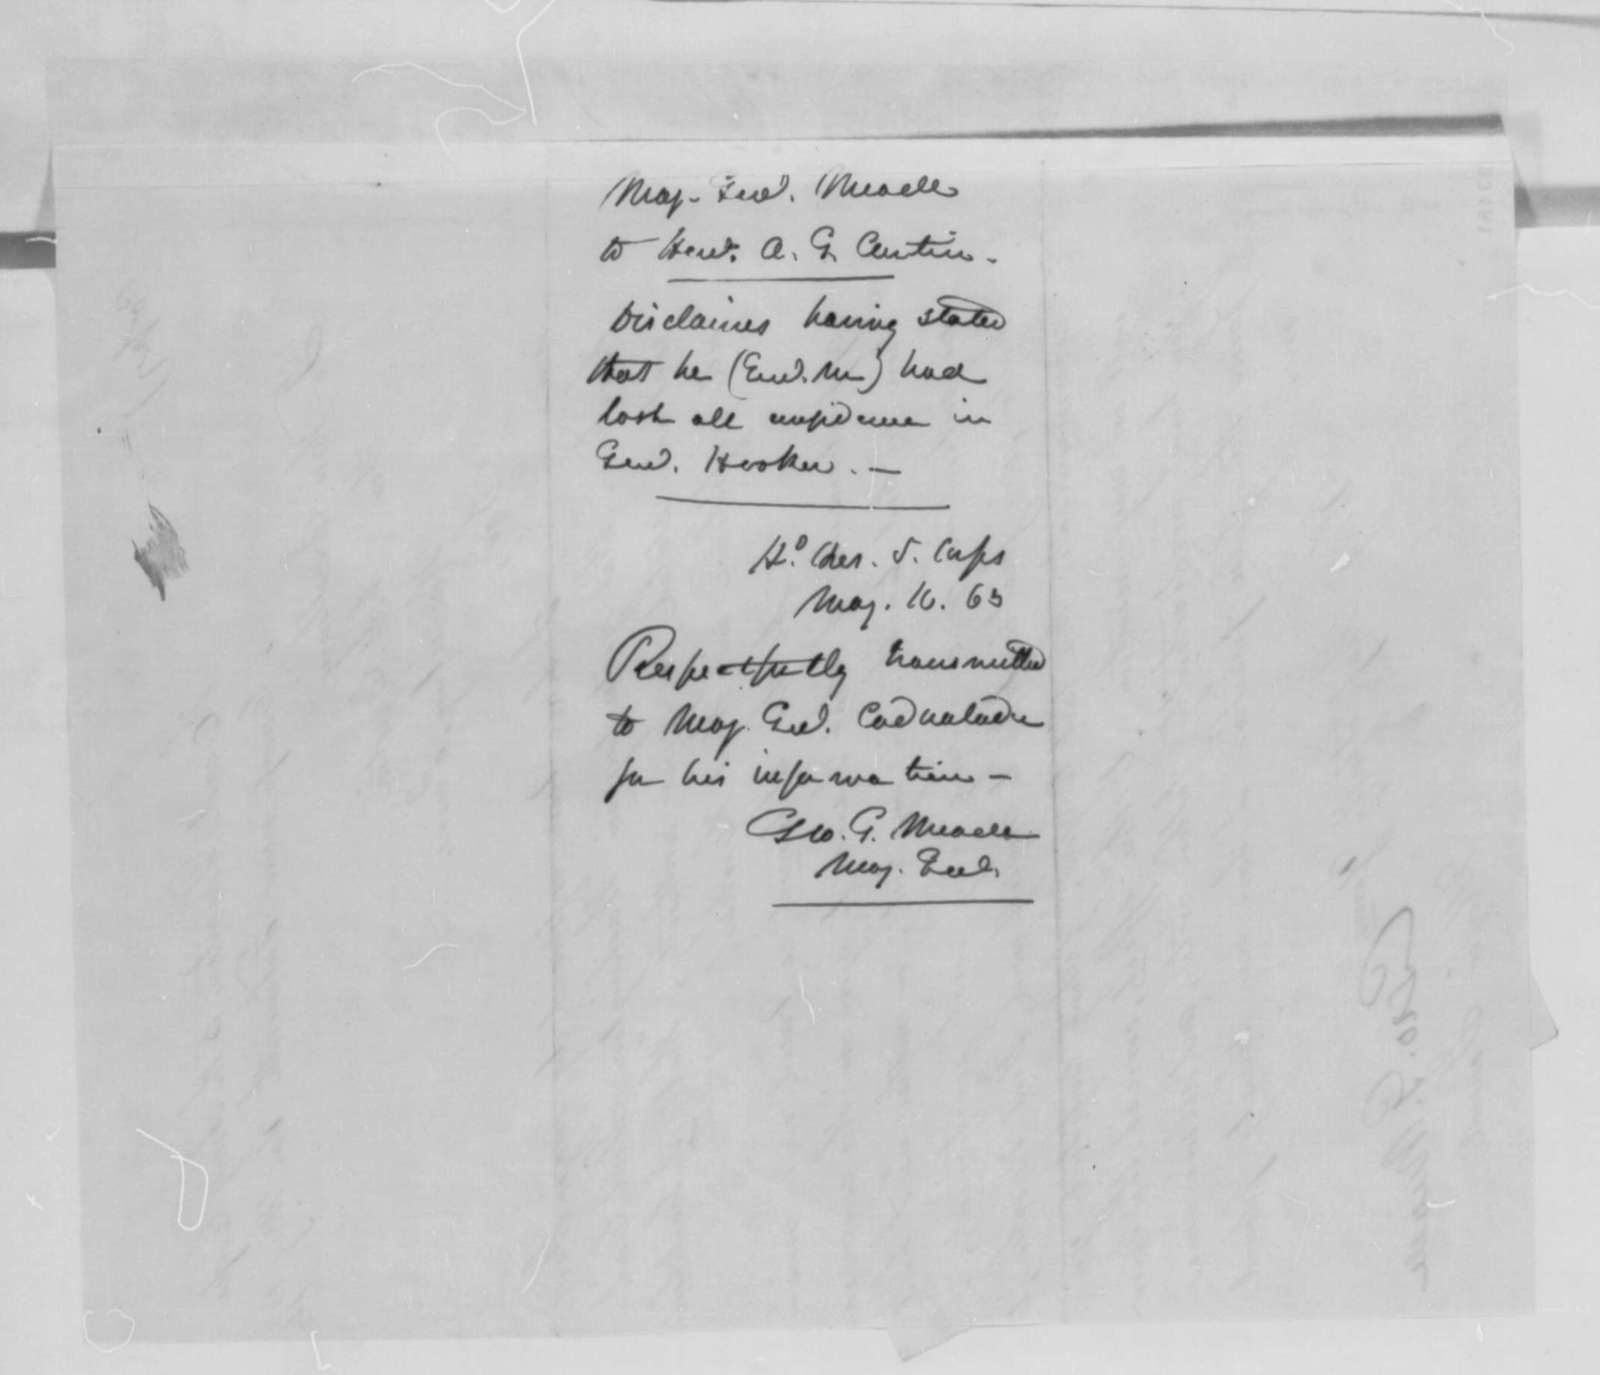 George G. Meade to Andrew G. Curtin, Friday, May 15, 1863  (Meade has confidence in Hooker; endorsed by Meade to Cadwalader)